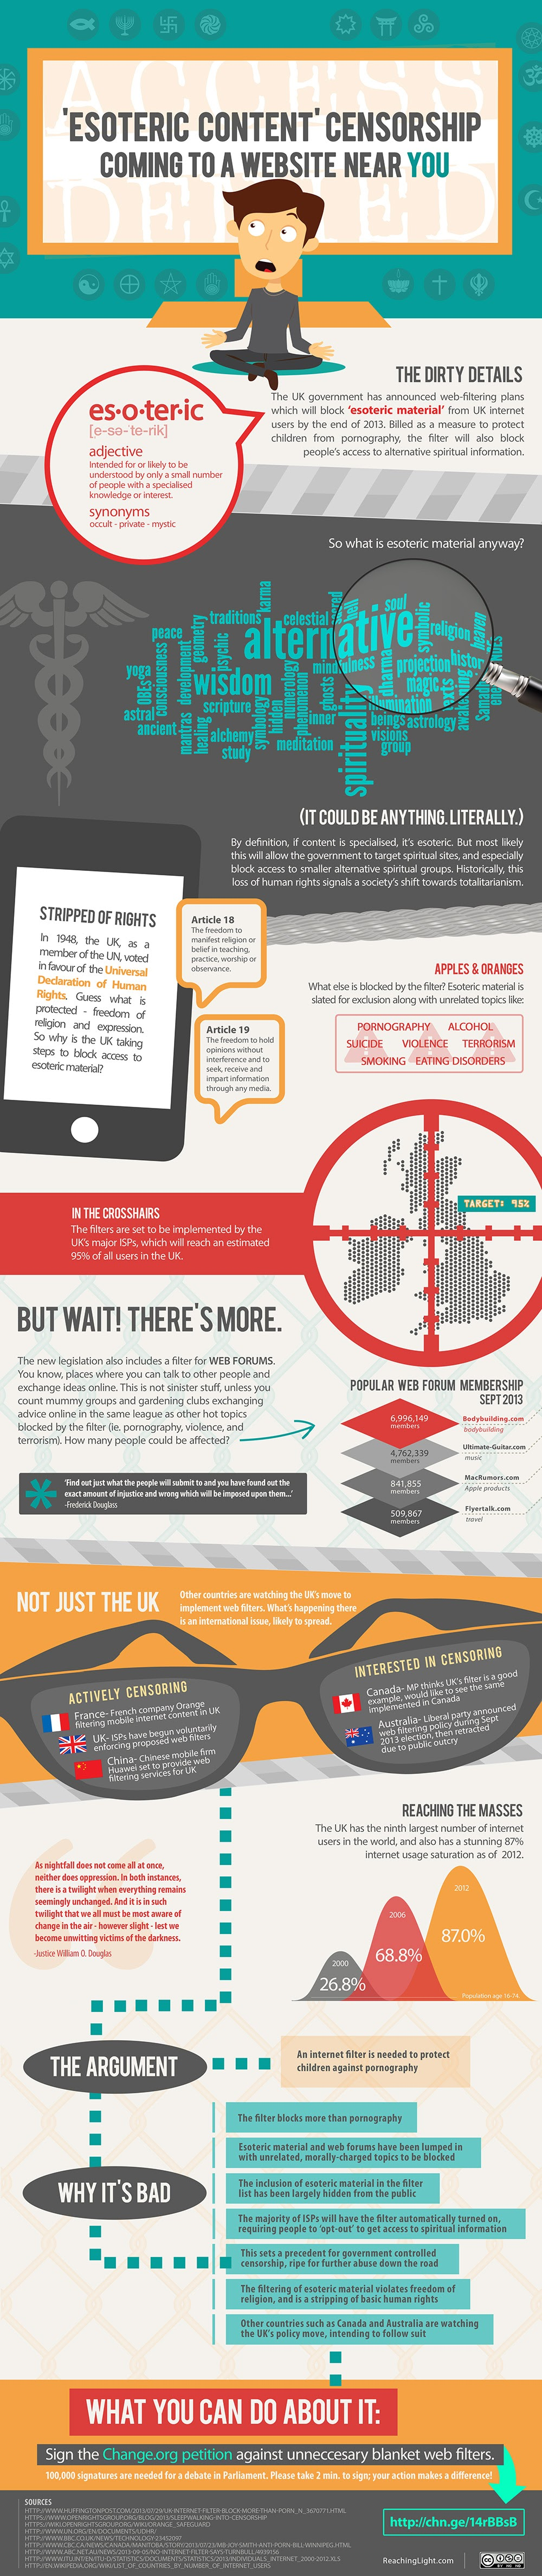 Esoteric Content Censorship Coming To A Website Near You #infographic